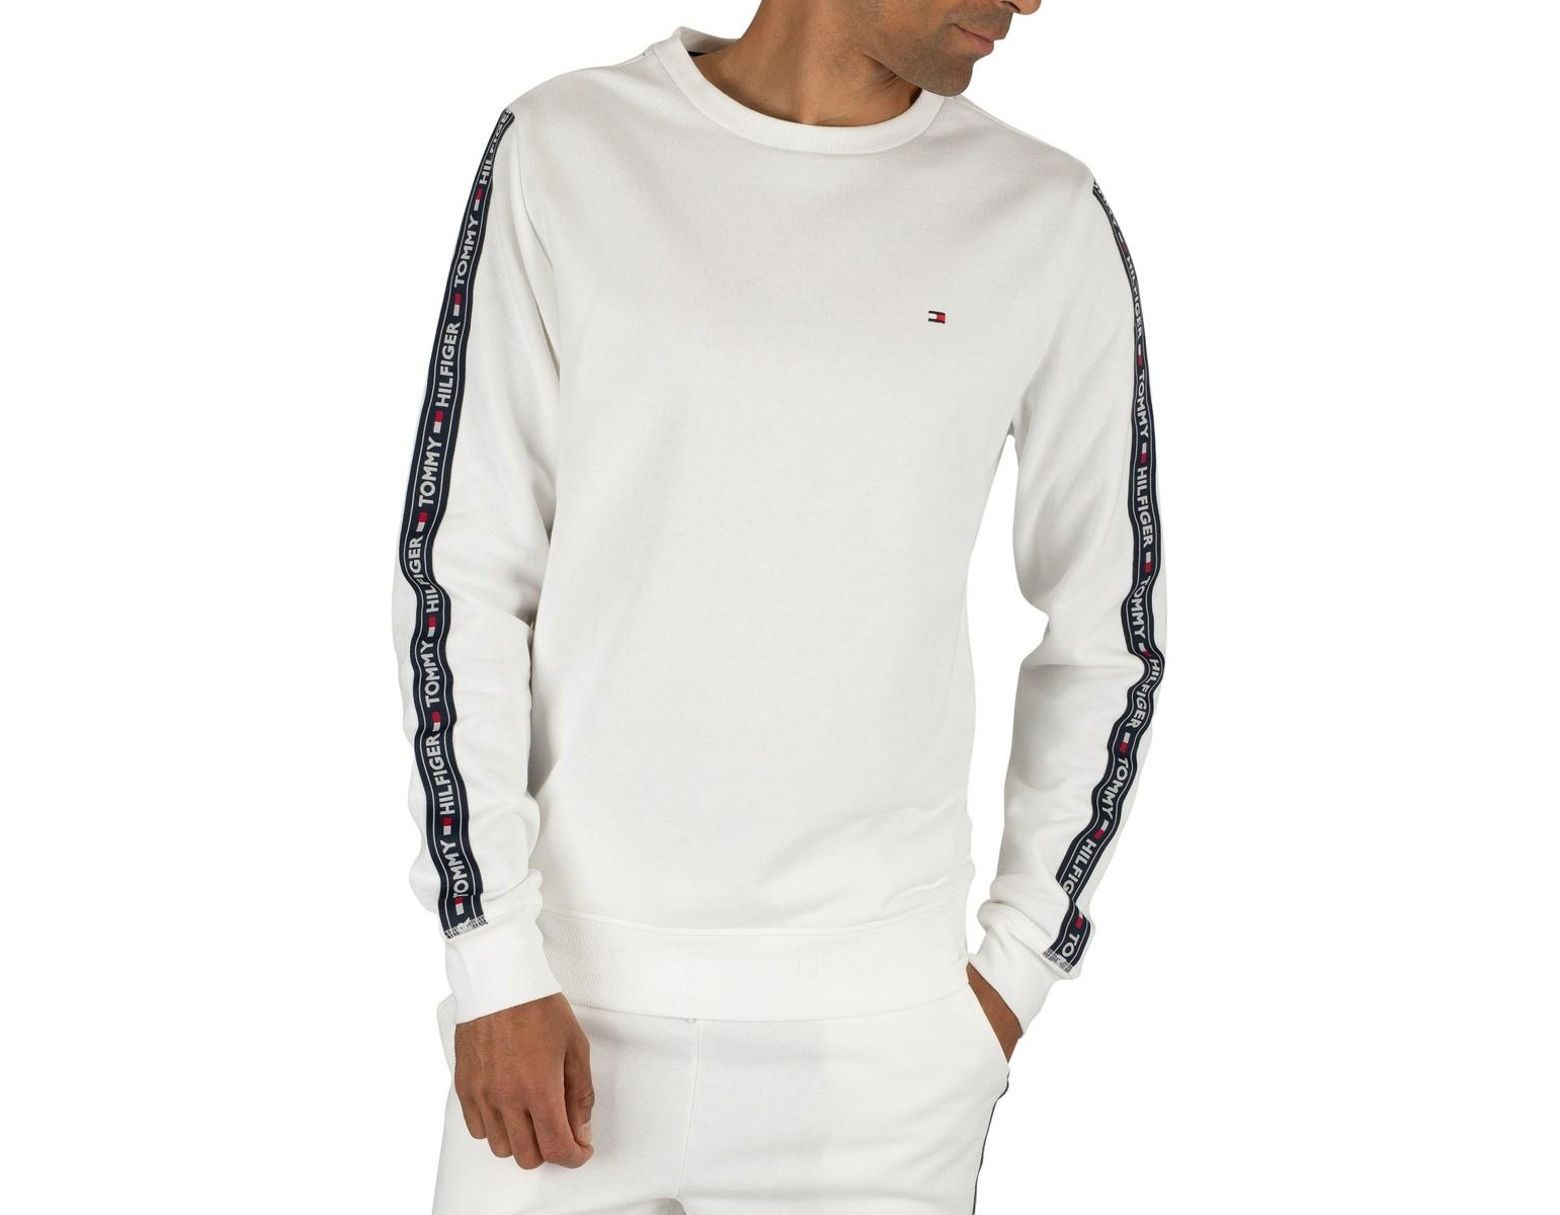 Tommy Hilfiger Men/'s Track Sweatshirt White